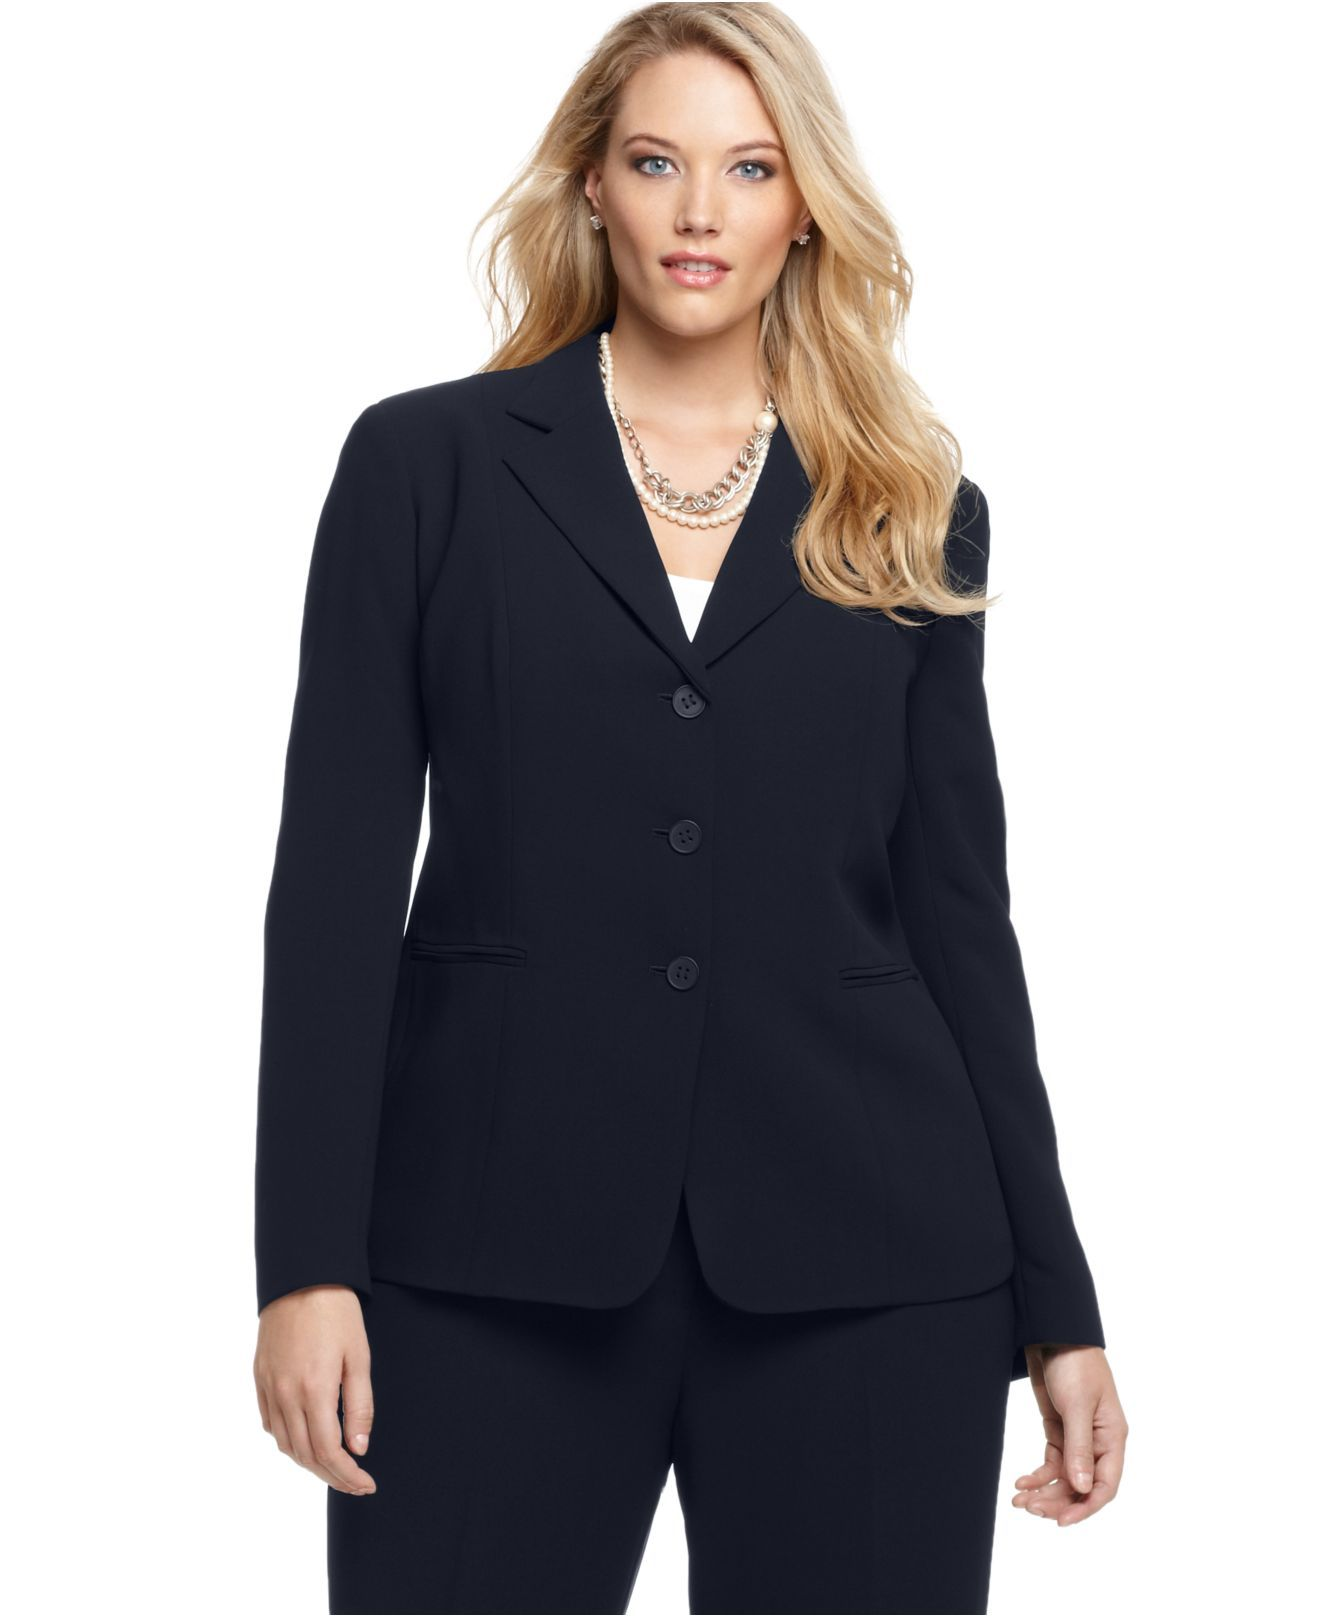 Pant Suits Work Particularly With Some Low Key Jewelry Like This Gold Pearl Necklace And C Plus Size Interview Outfits Blazer Buttons Interview Attire Women [ 1616 x 1320 Pixel ]